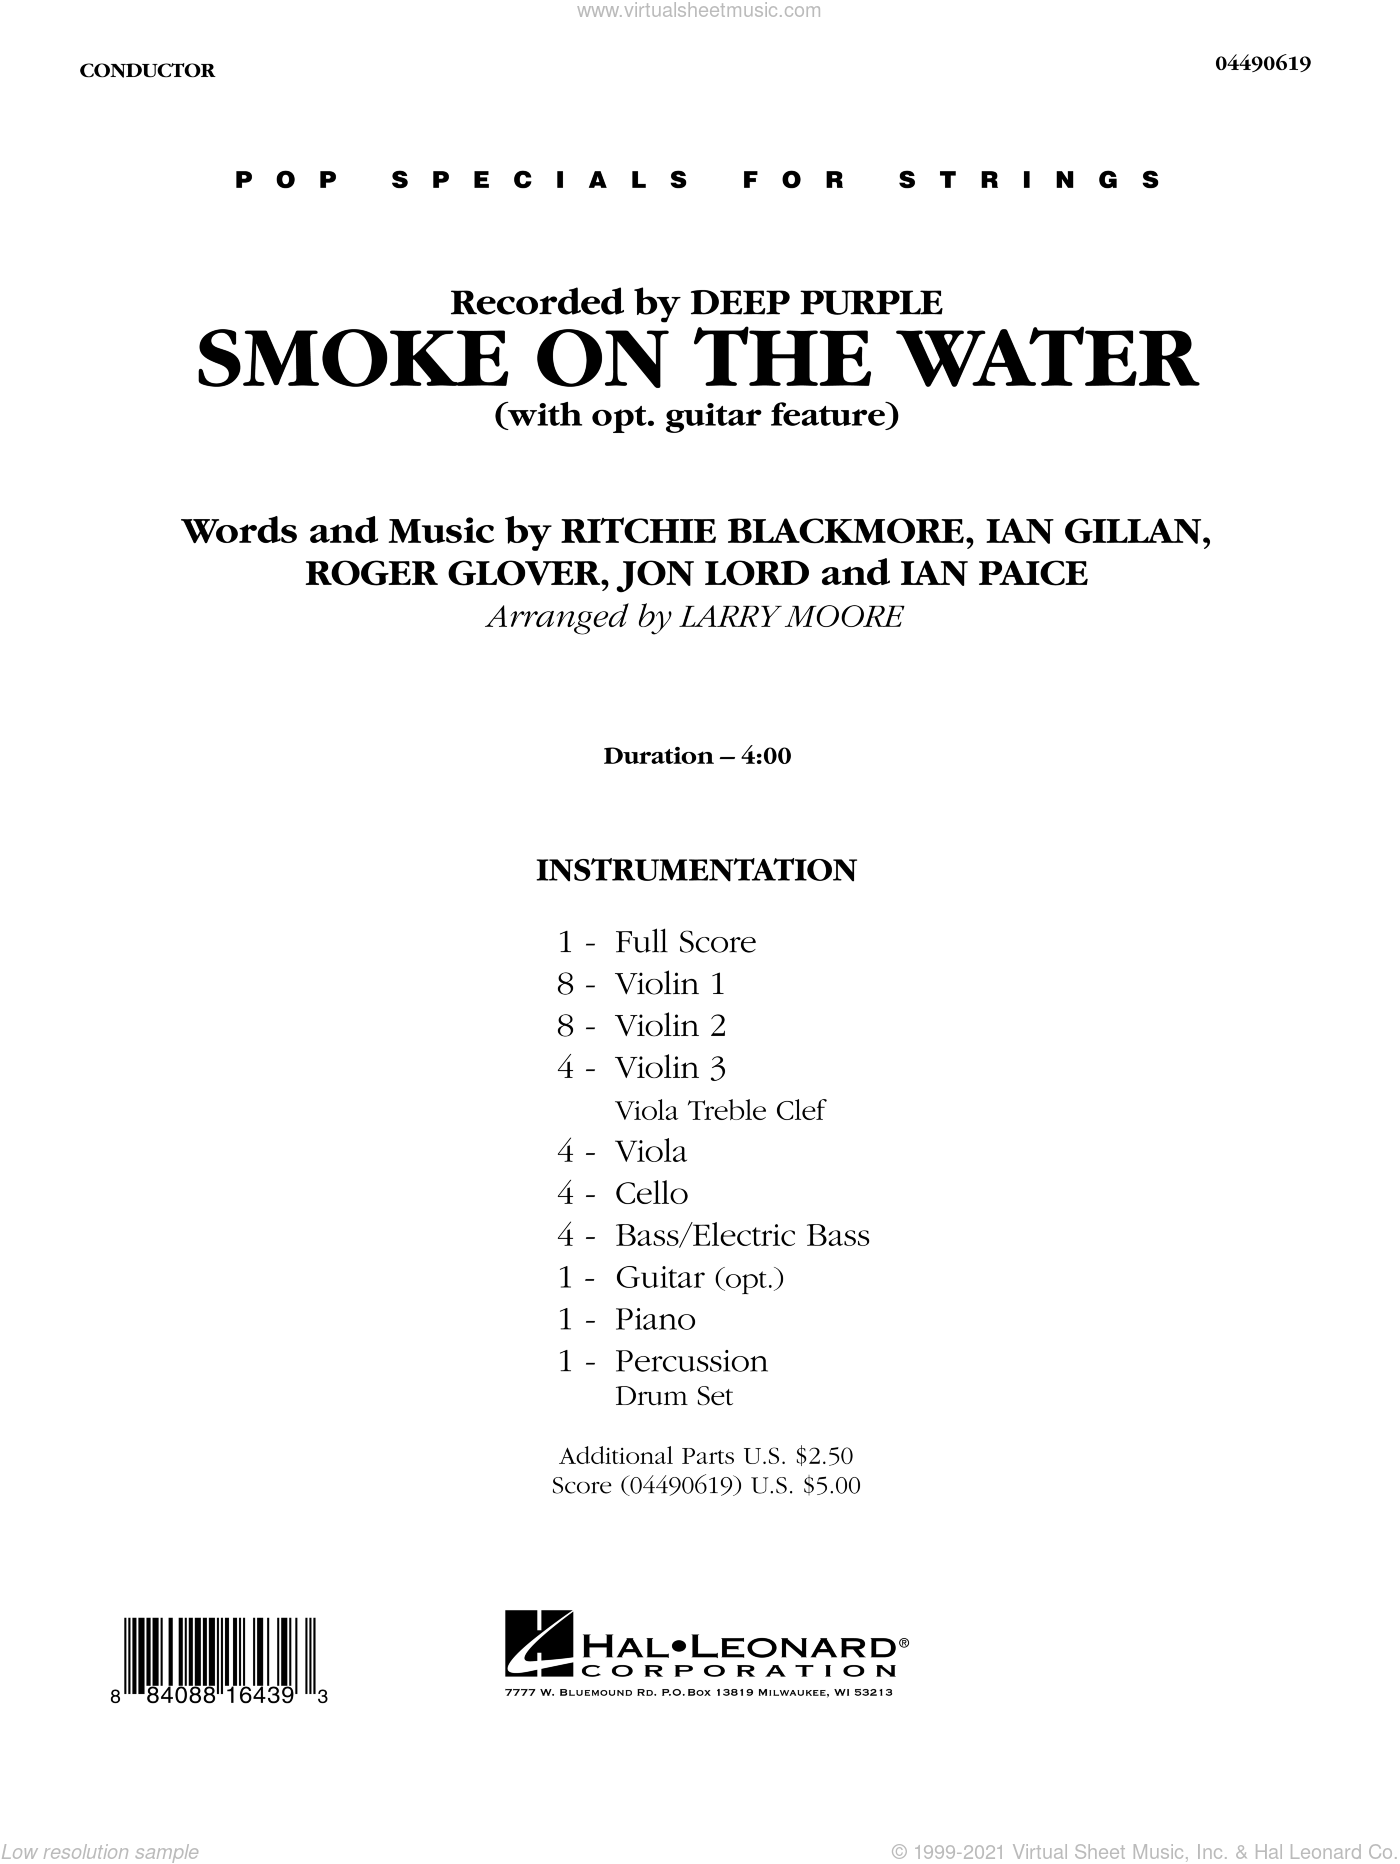 Smoke on the Water sheet music for orchestra (full score) by Larry Moore